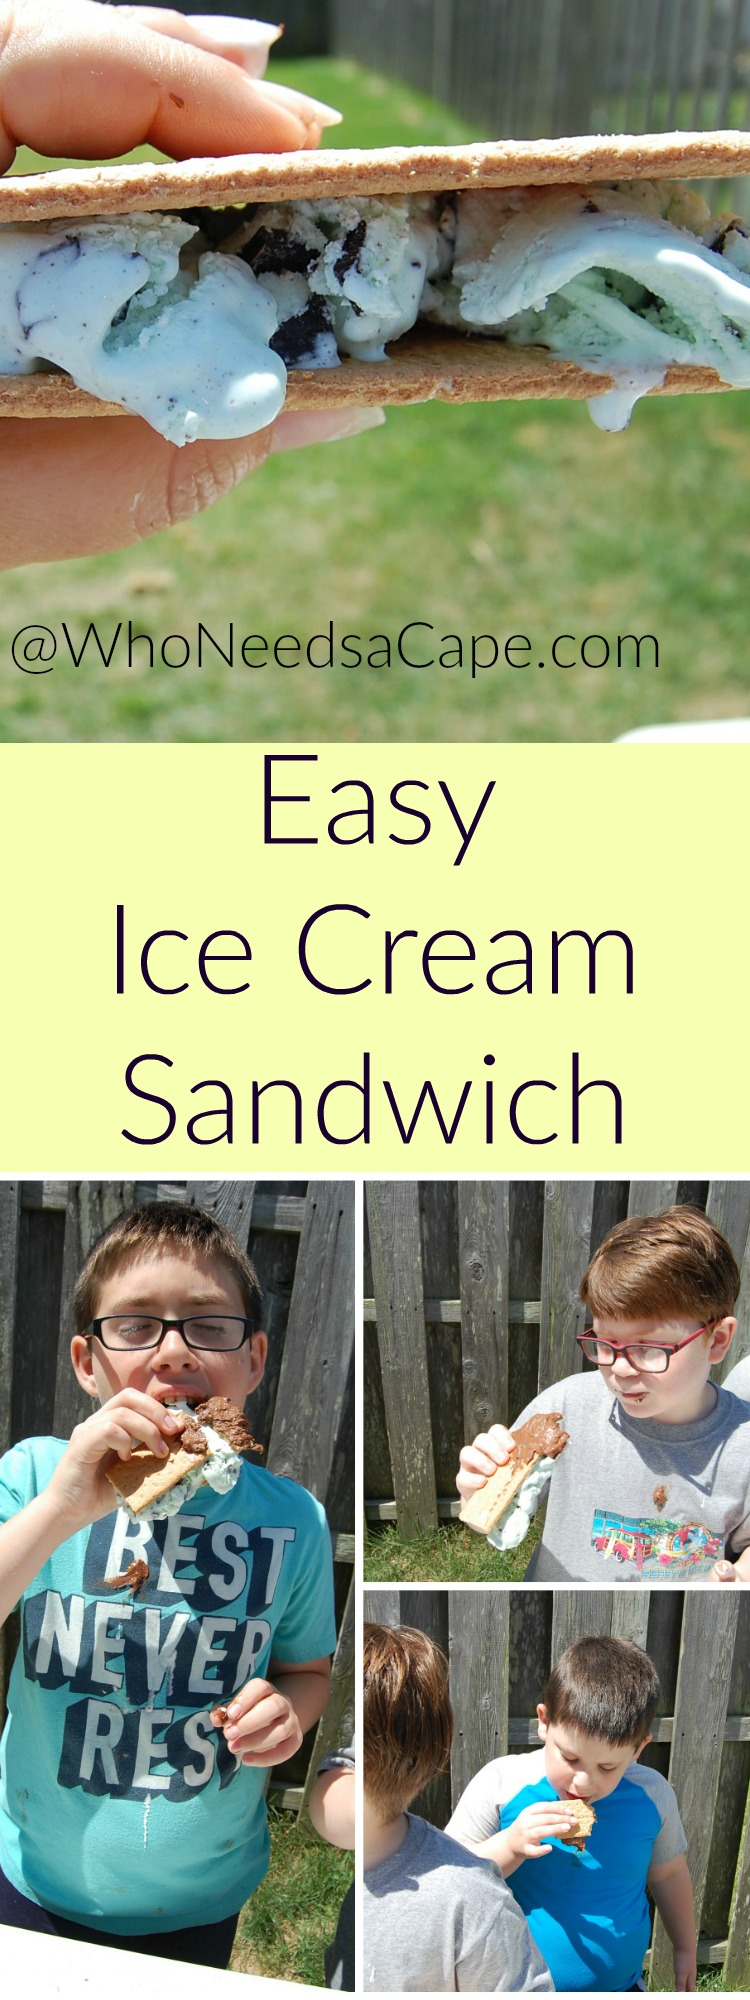 Easy Ice Cream Sandwich is kid made and kid approved. Let your kids be the chef of this EASY treat!